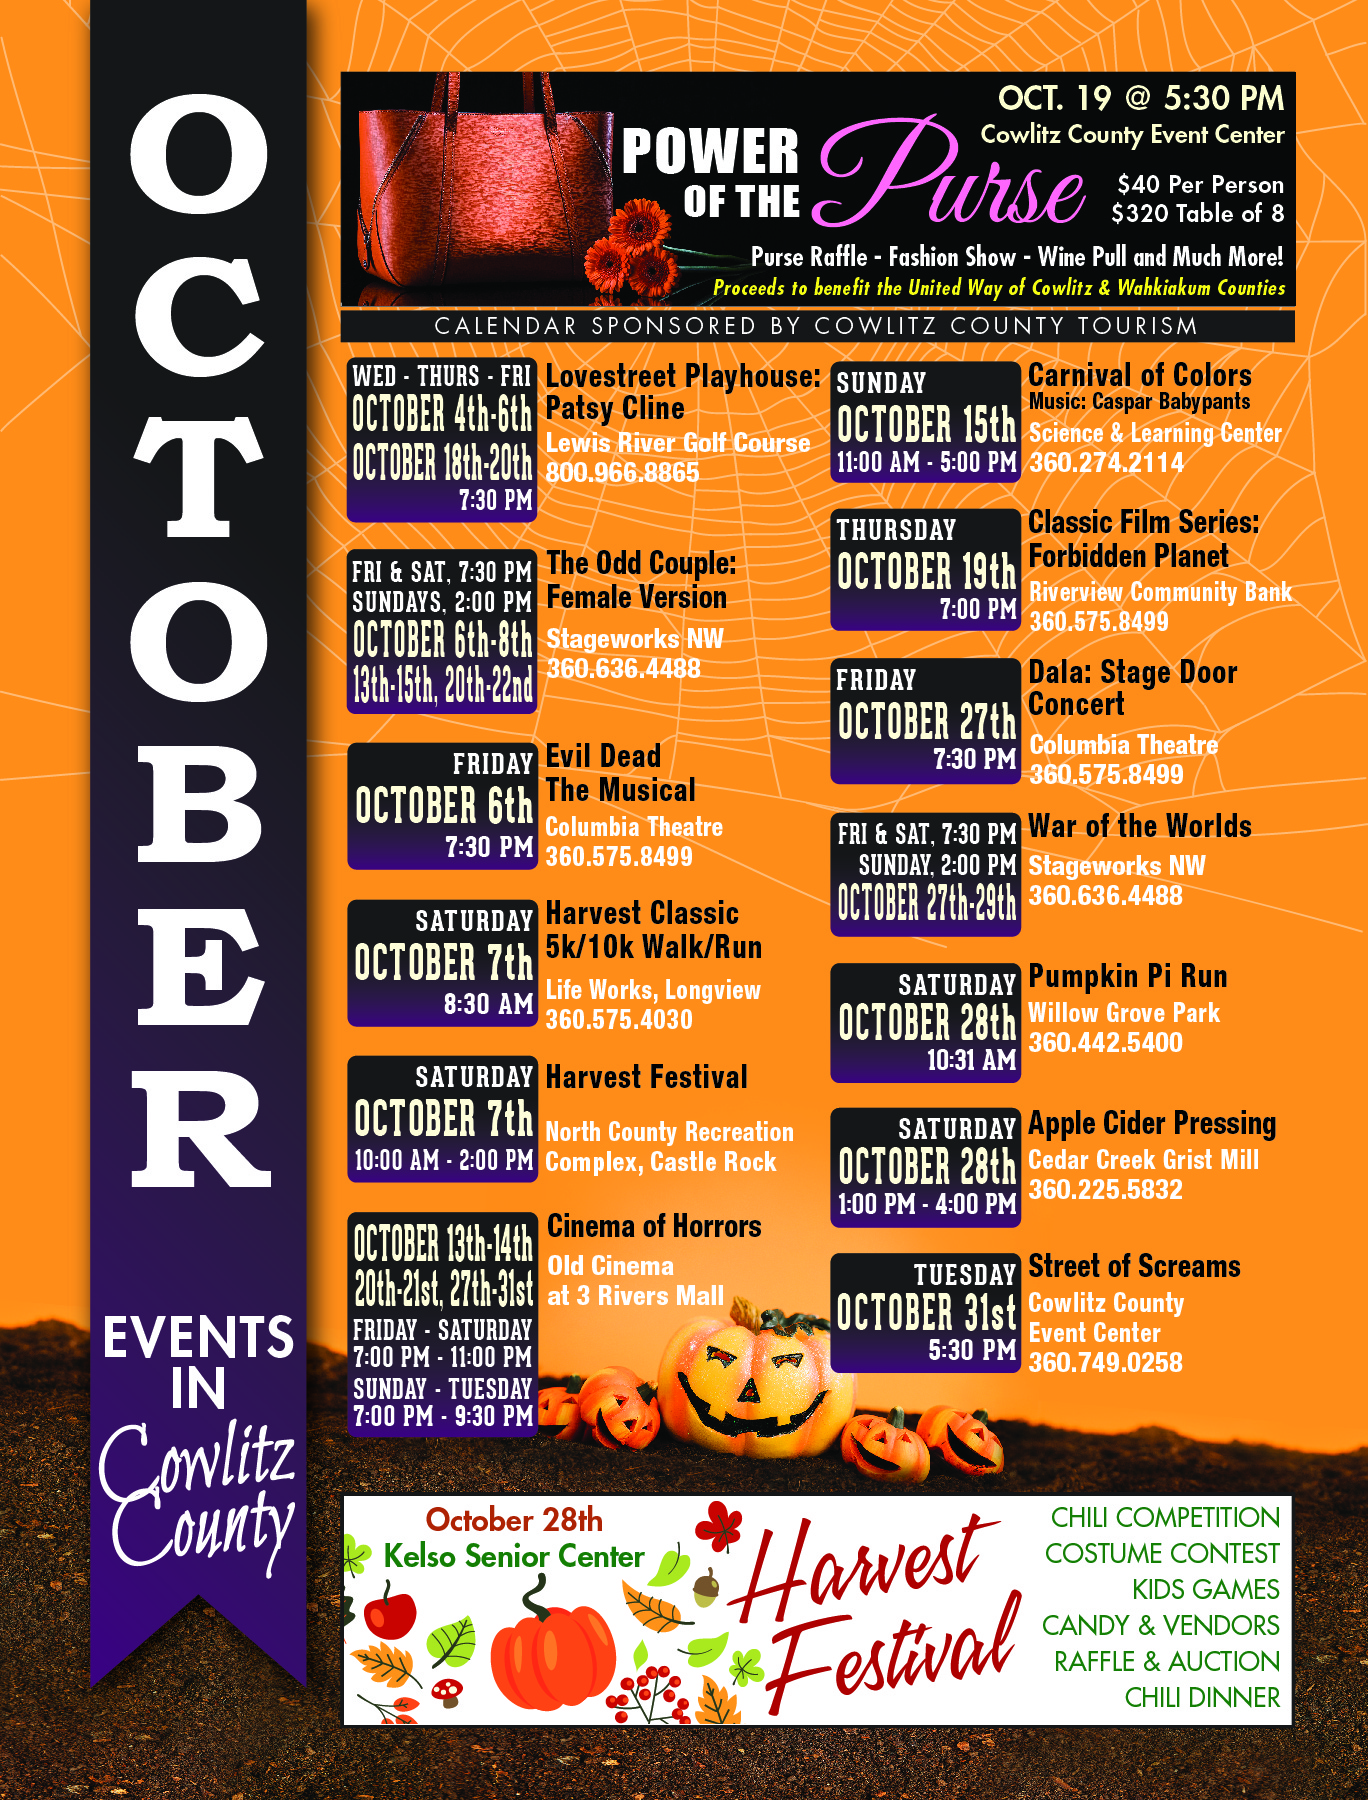 cct_17_52409_october_event_poster-01